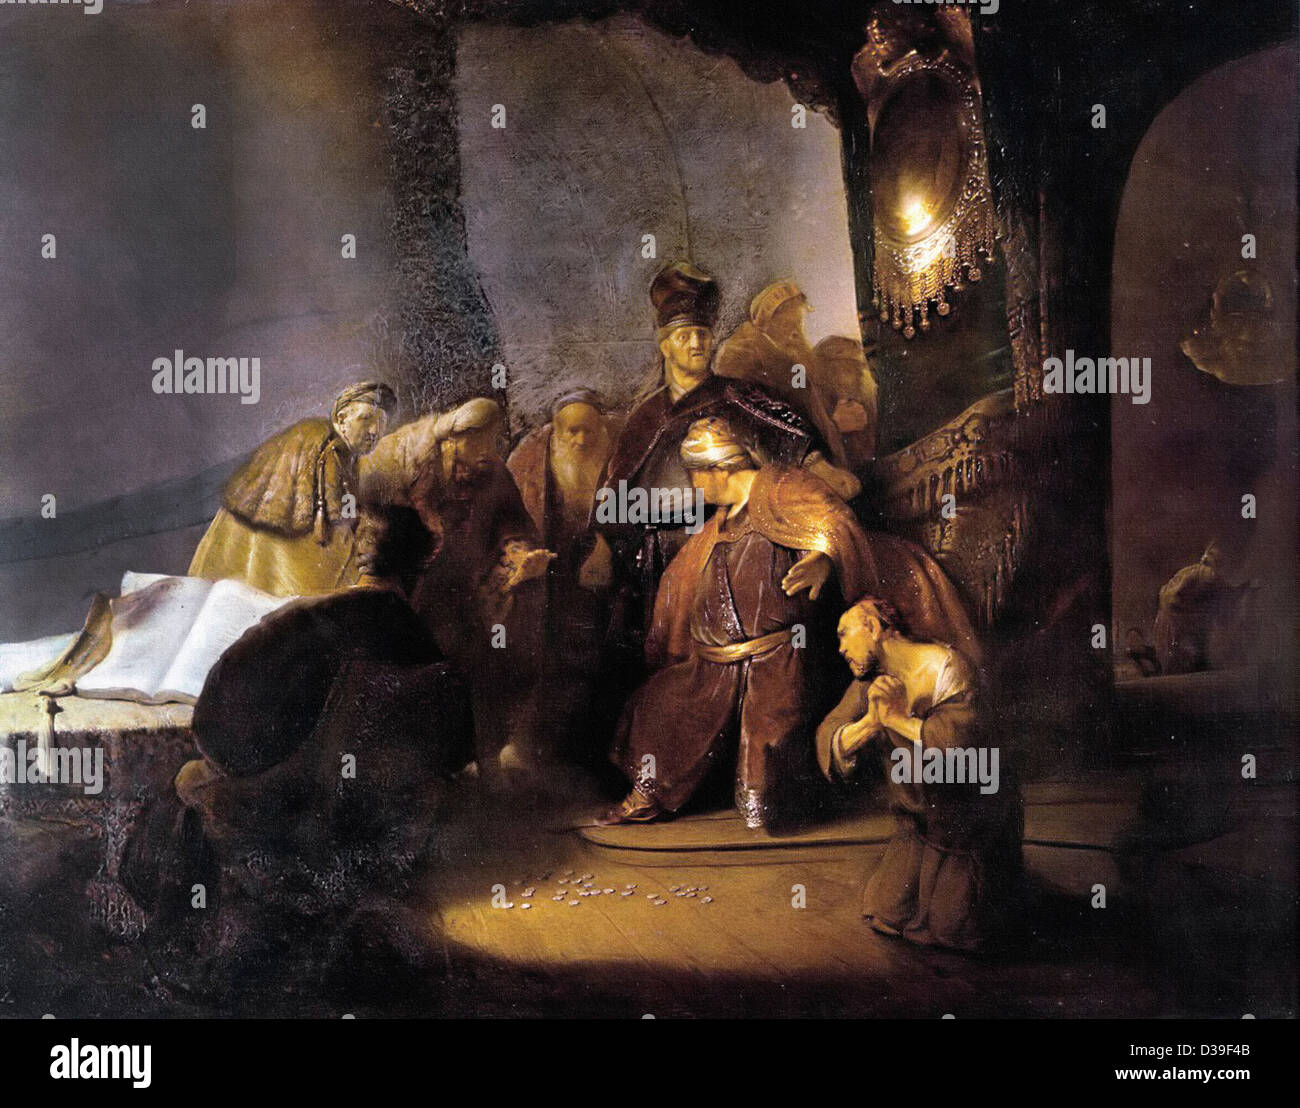 Rembrandt van Rijn, Repentant Judas Returning The Pieces Of Silver. 1629 Oil on panel. Baroque. Gallery: Private - Stock Image